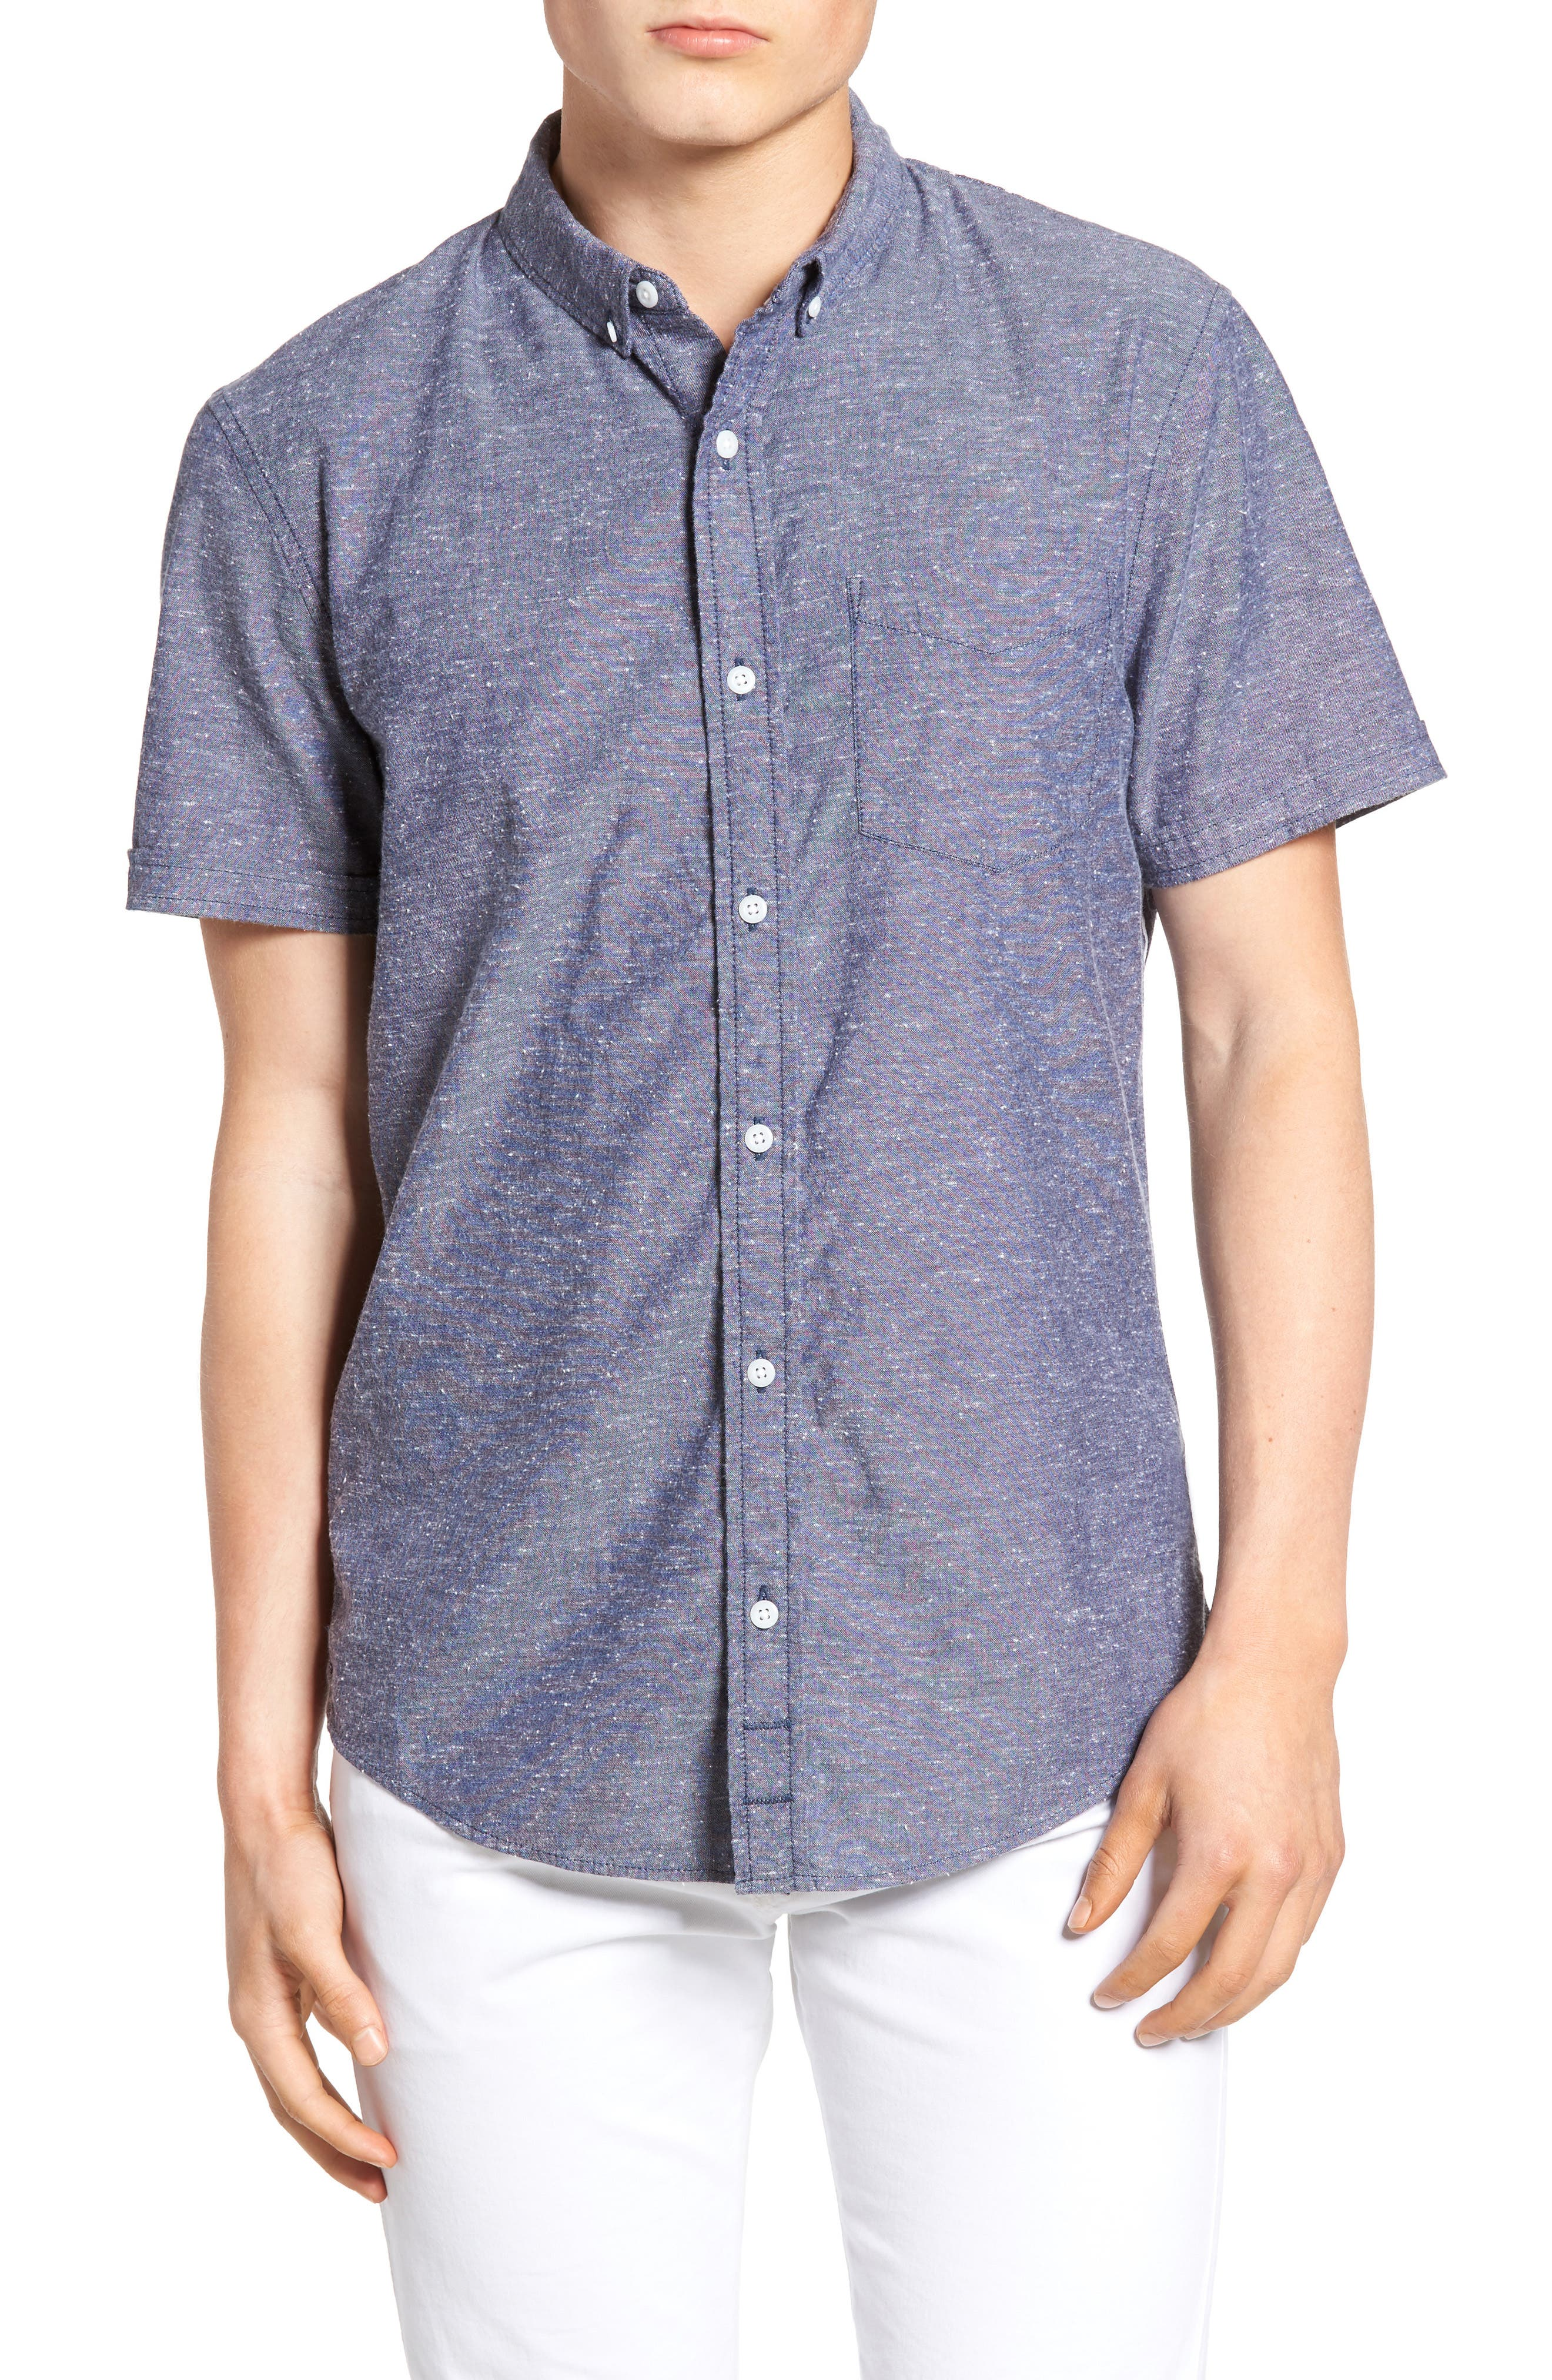 1901 Placed Stripe Chambray Shirt